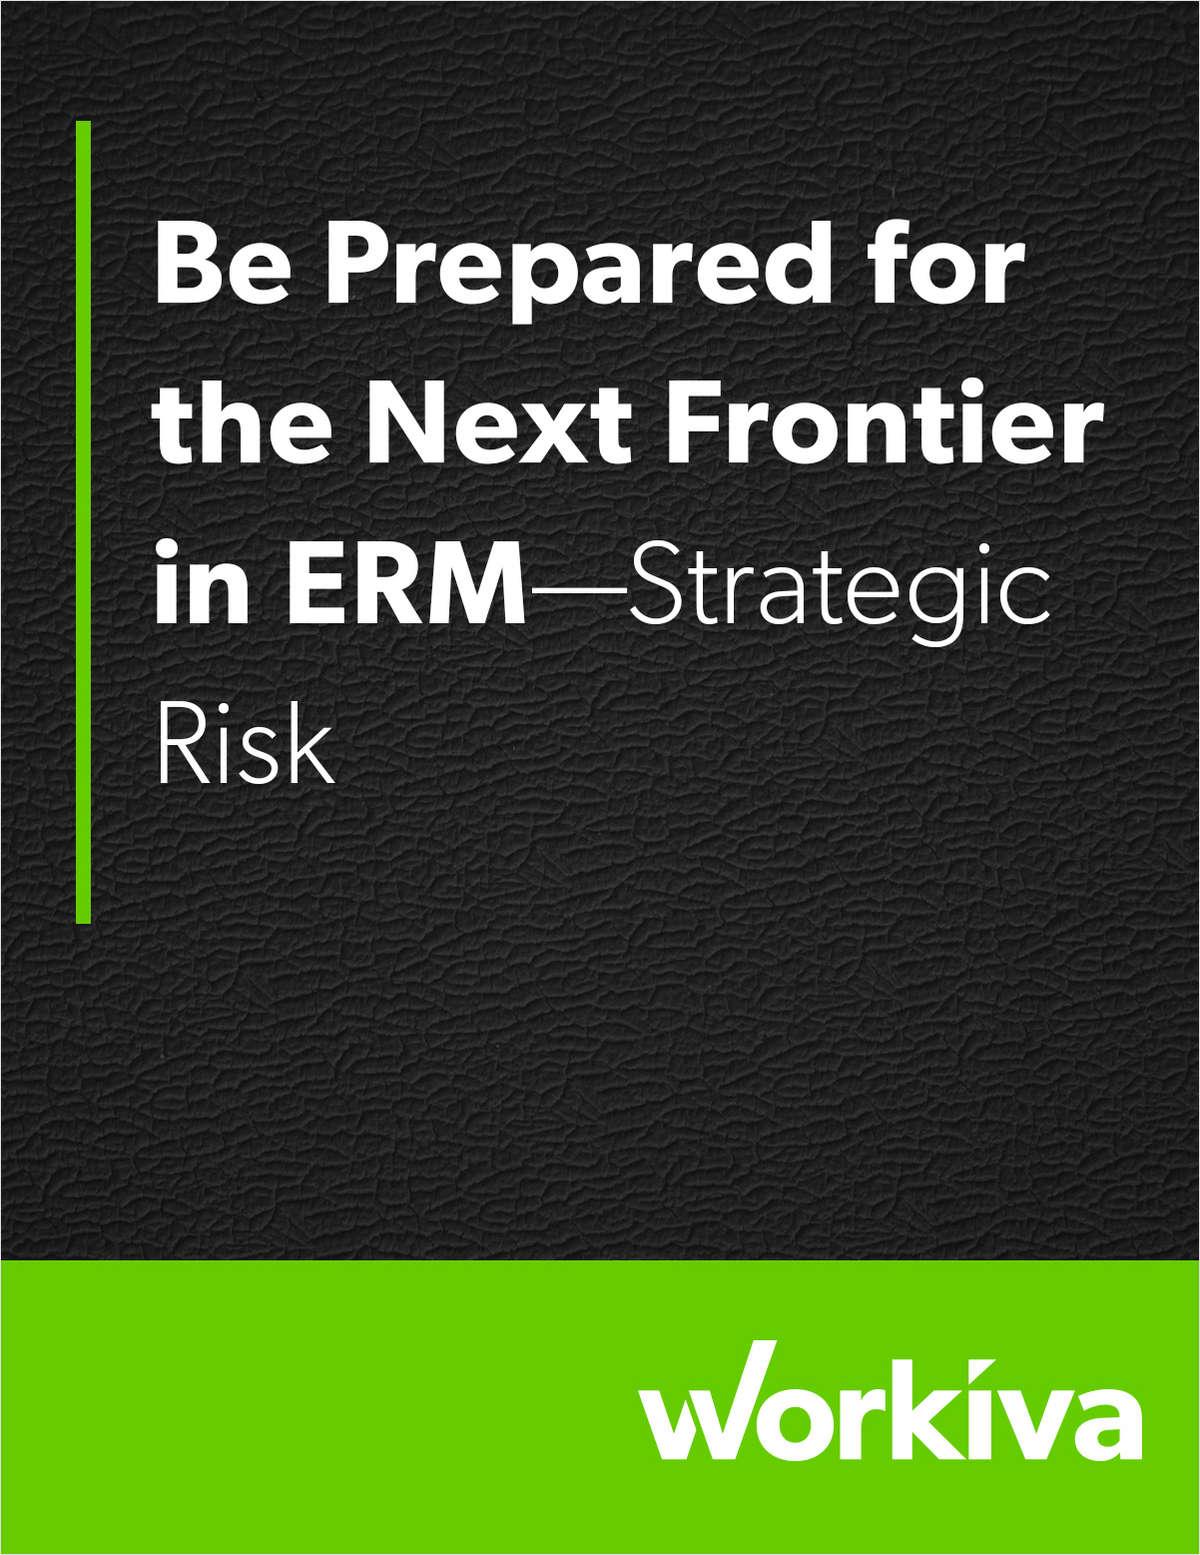 http://magz.tradepub.com/free-offer/strategic-risk-management-the-next-frontier-for-erm/w_worf31?sr=hicat&_t=hicat:1209